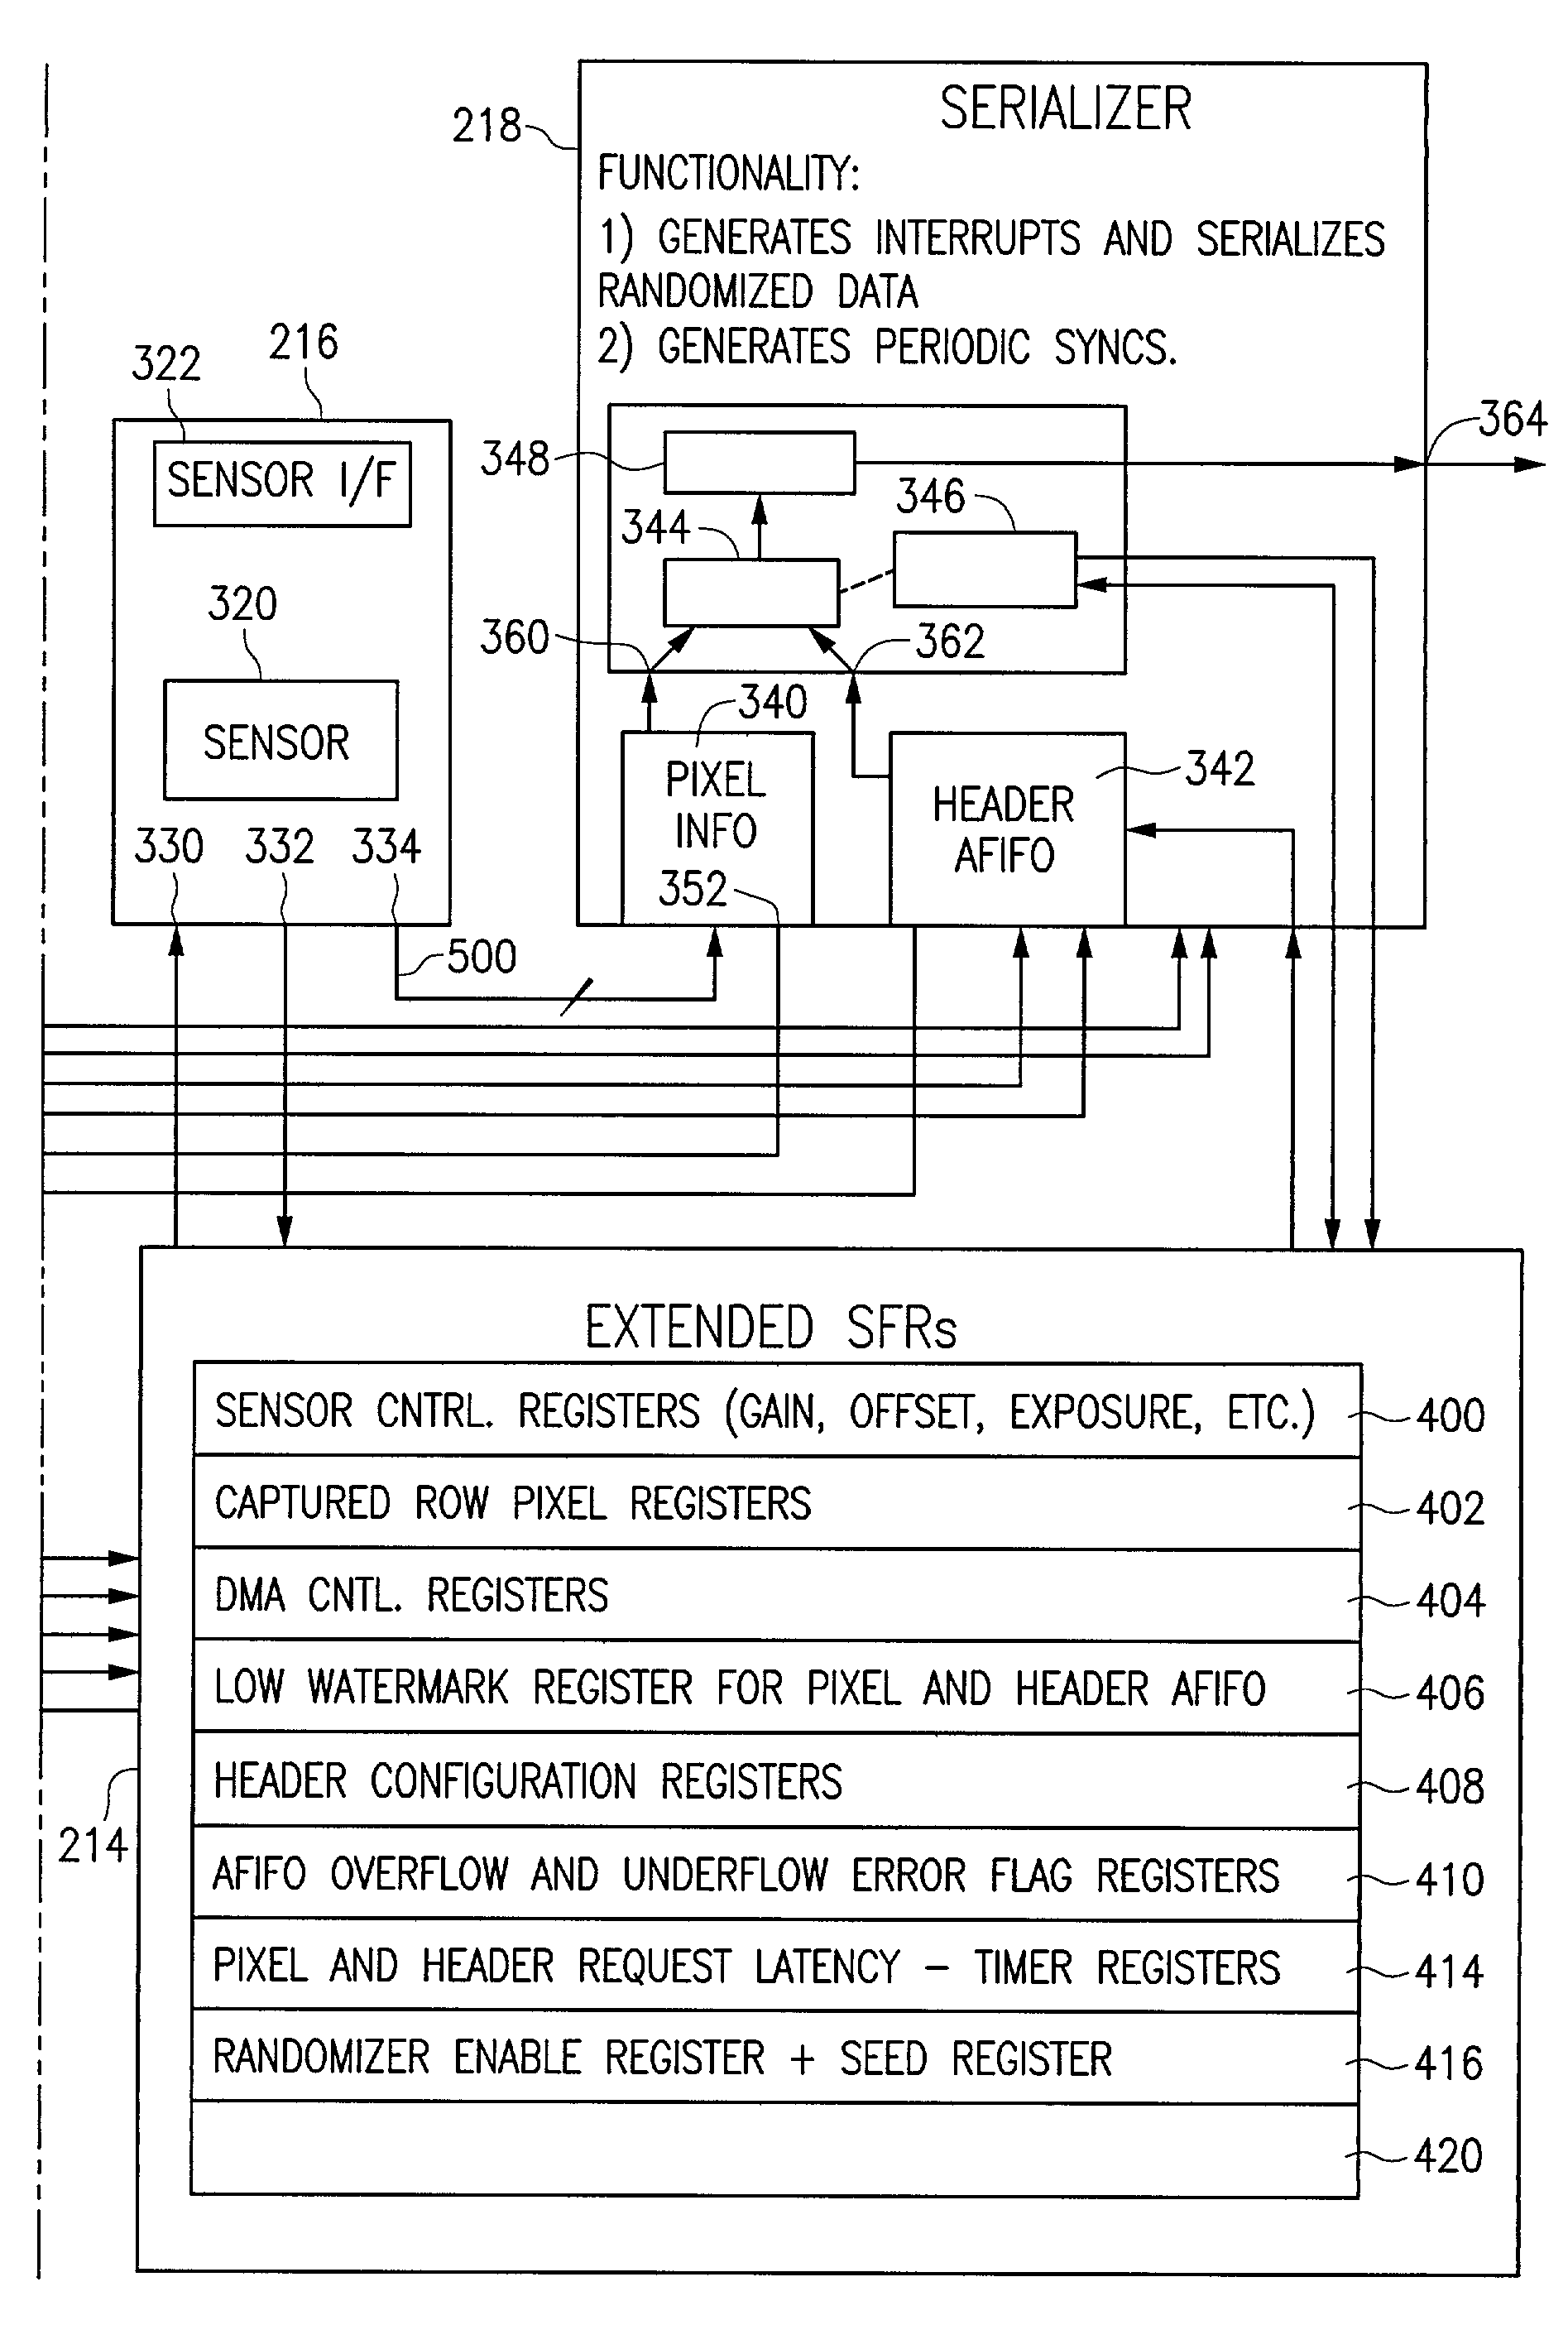 Gentex 453 Wiring Diagram 25 Images Toyota Diagrams Homelink Us20030210334a1 20031113 D00000 455 U2022 Free